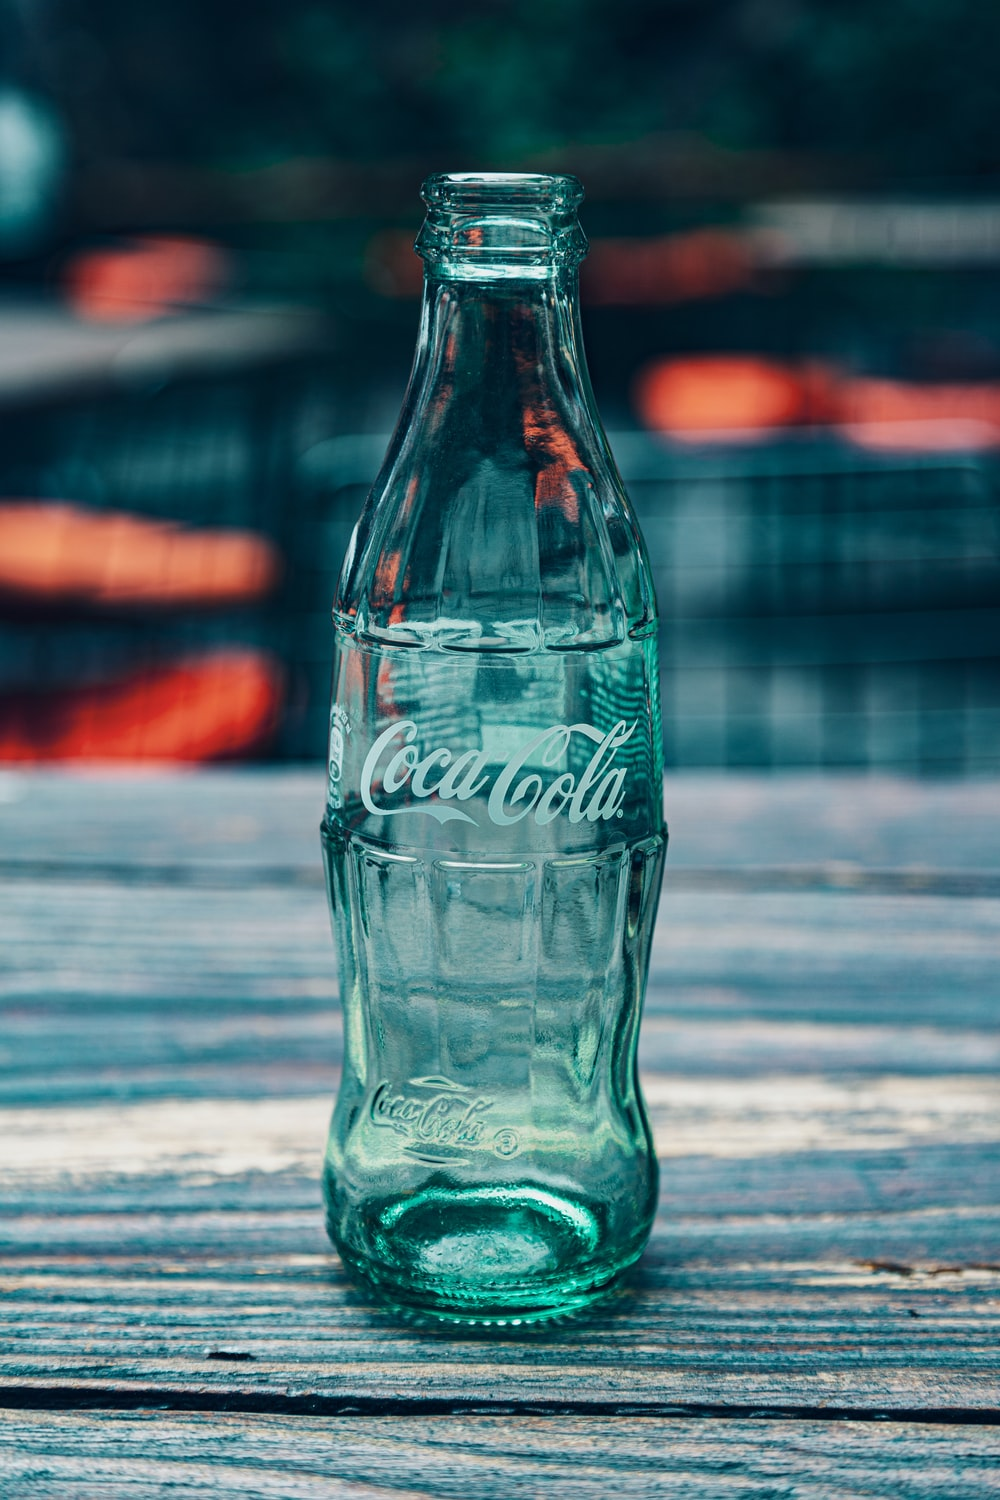 Coca-Cola glass bottle on wooden surface